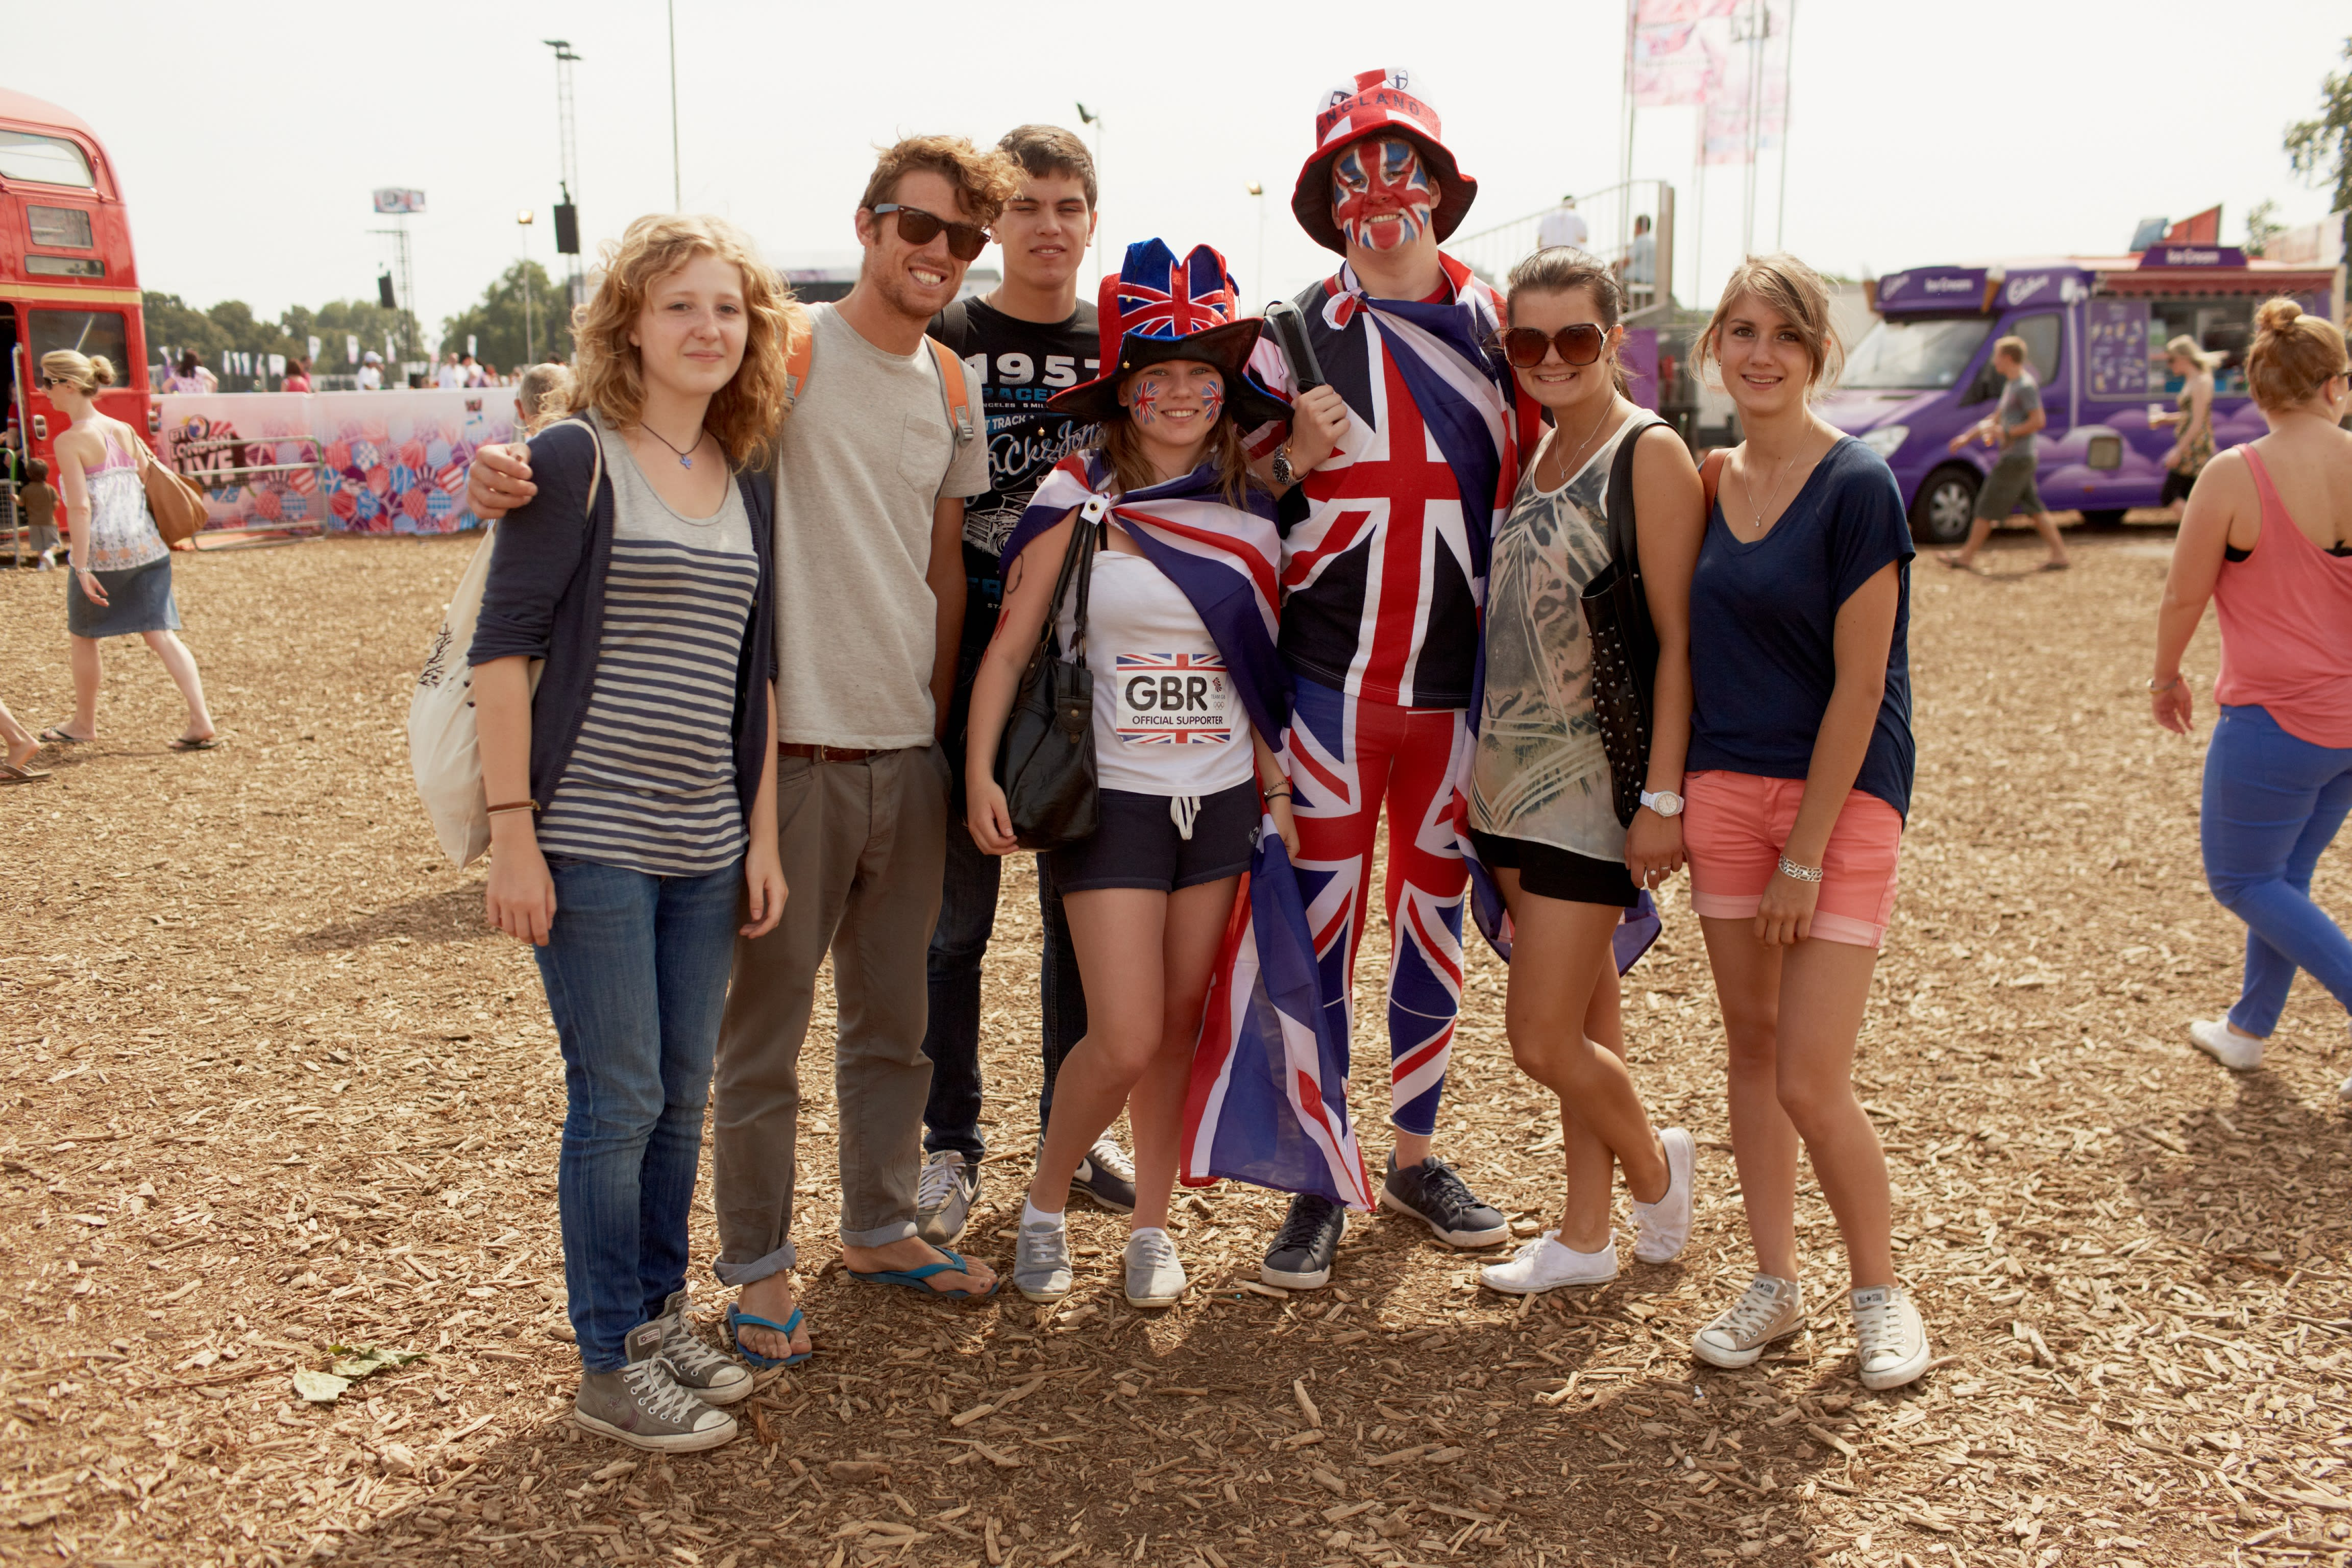 The Birthplace of English: Au Pair Program in London, England